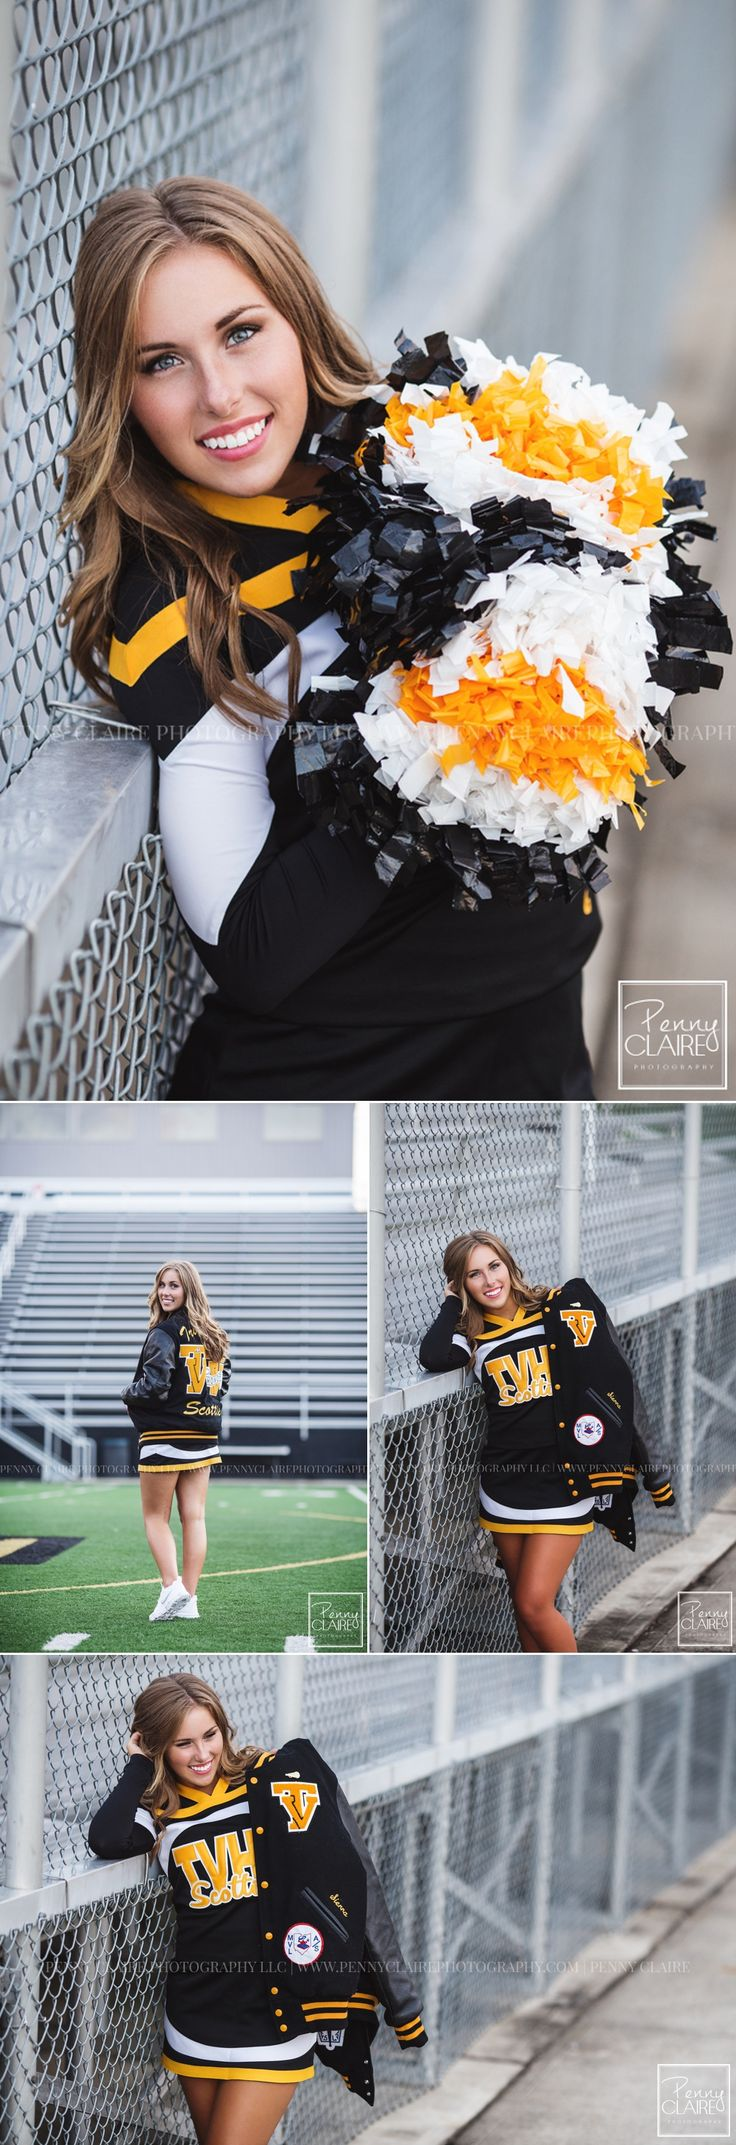 Penny Claire Photography Cheer senior pictures